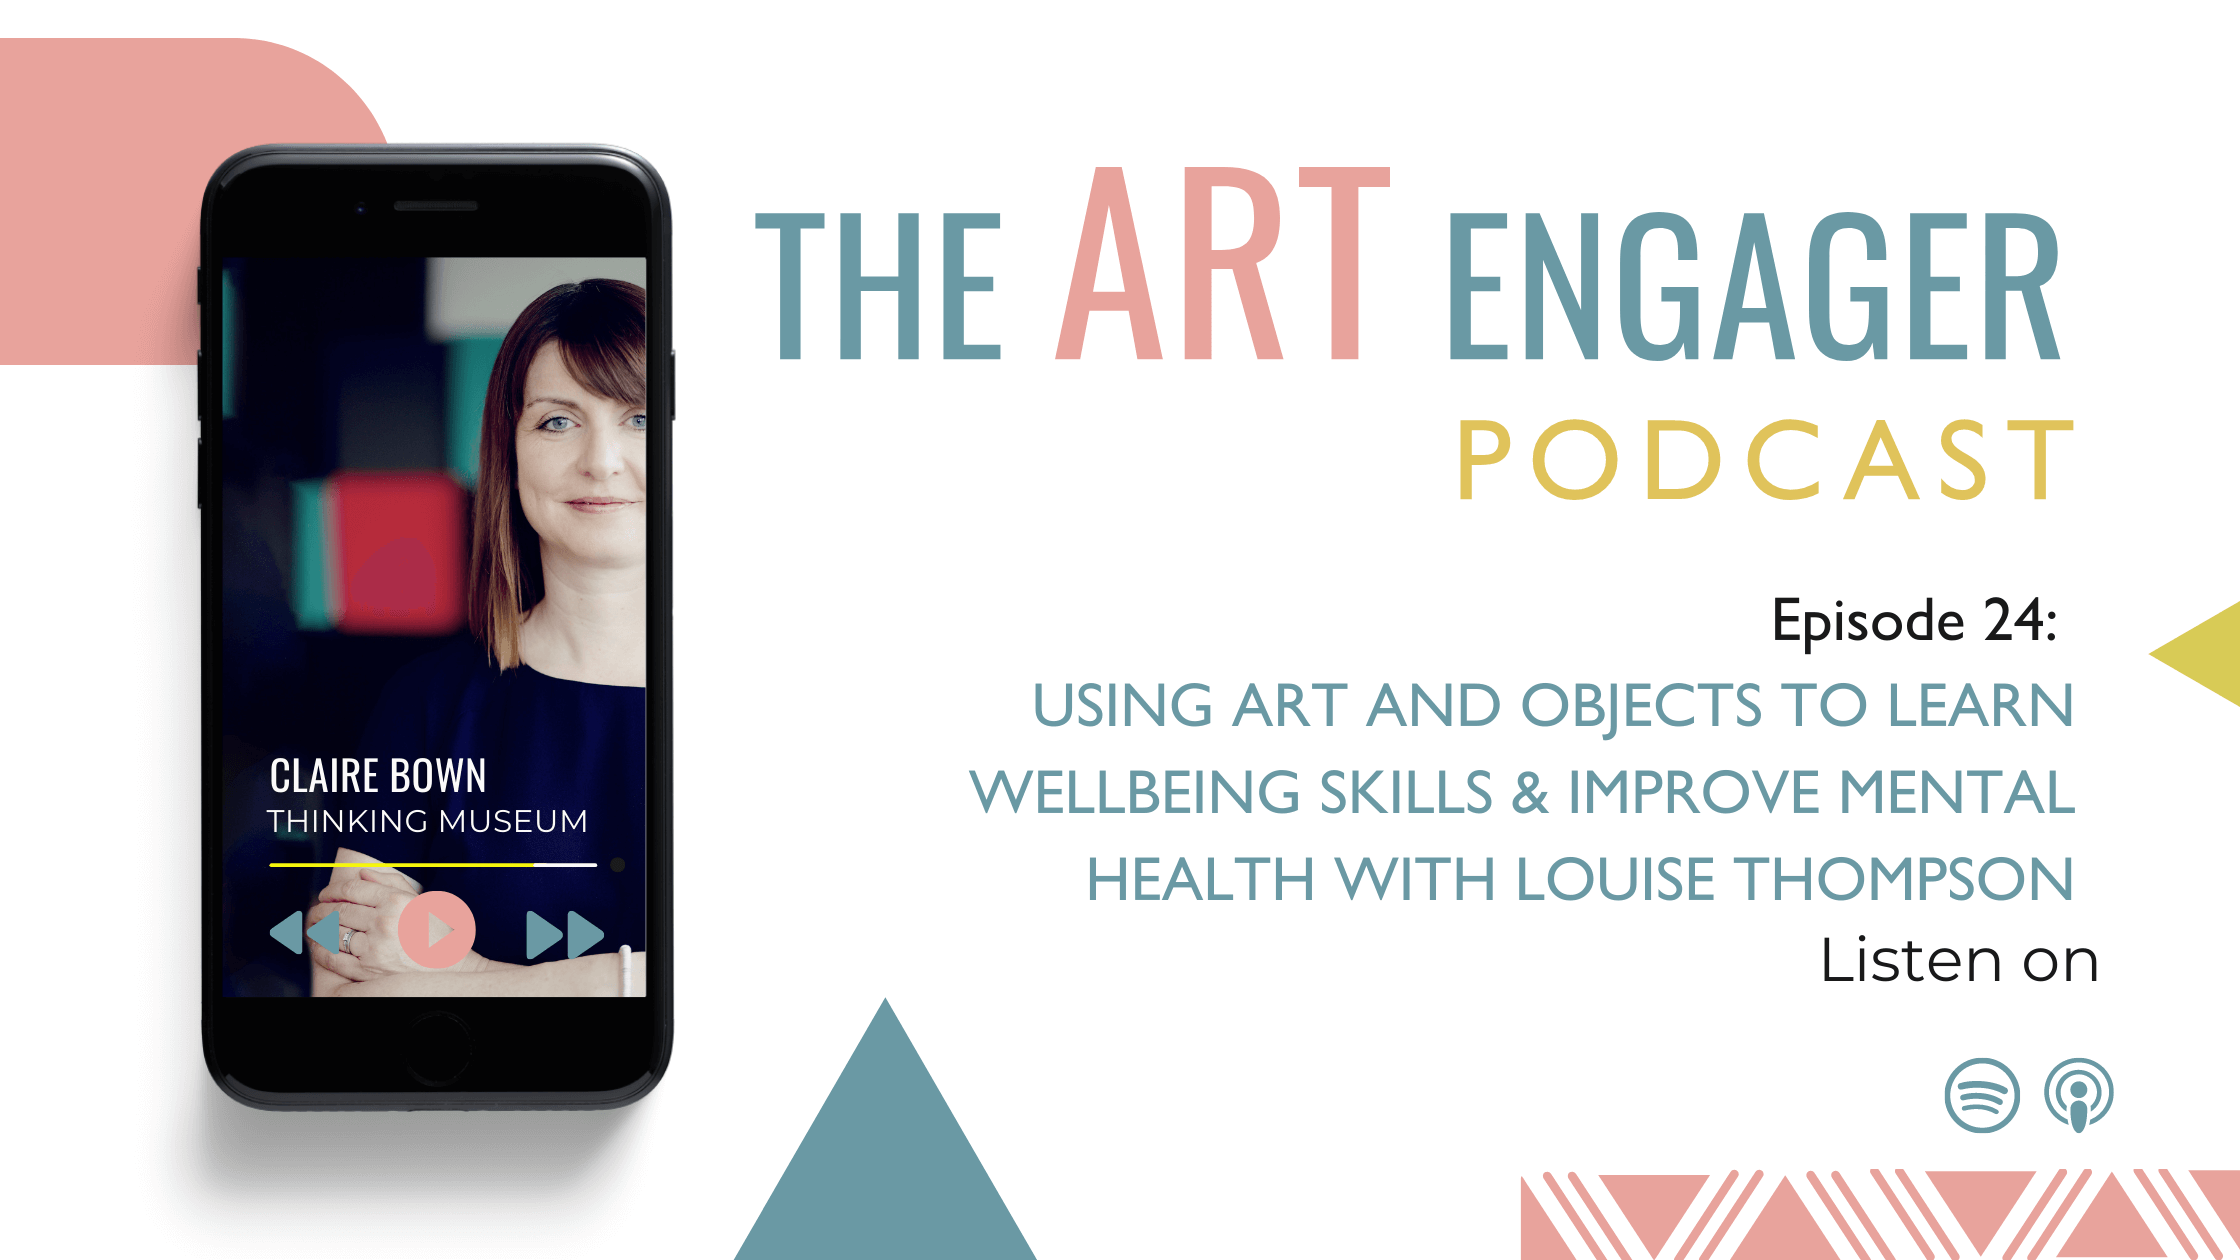 Using art and objects to learn wellbeing skills and improve mental health